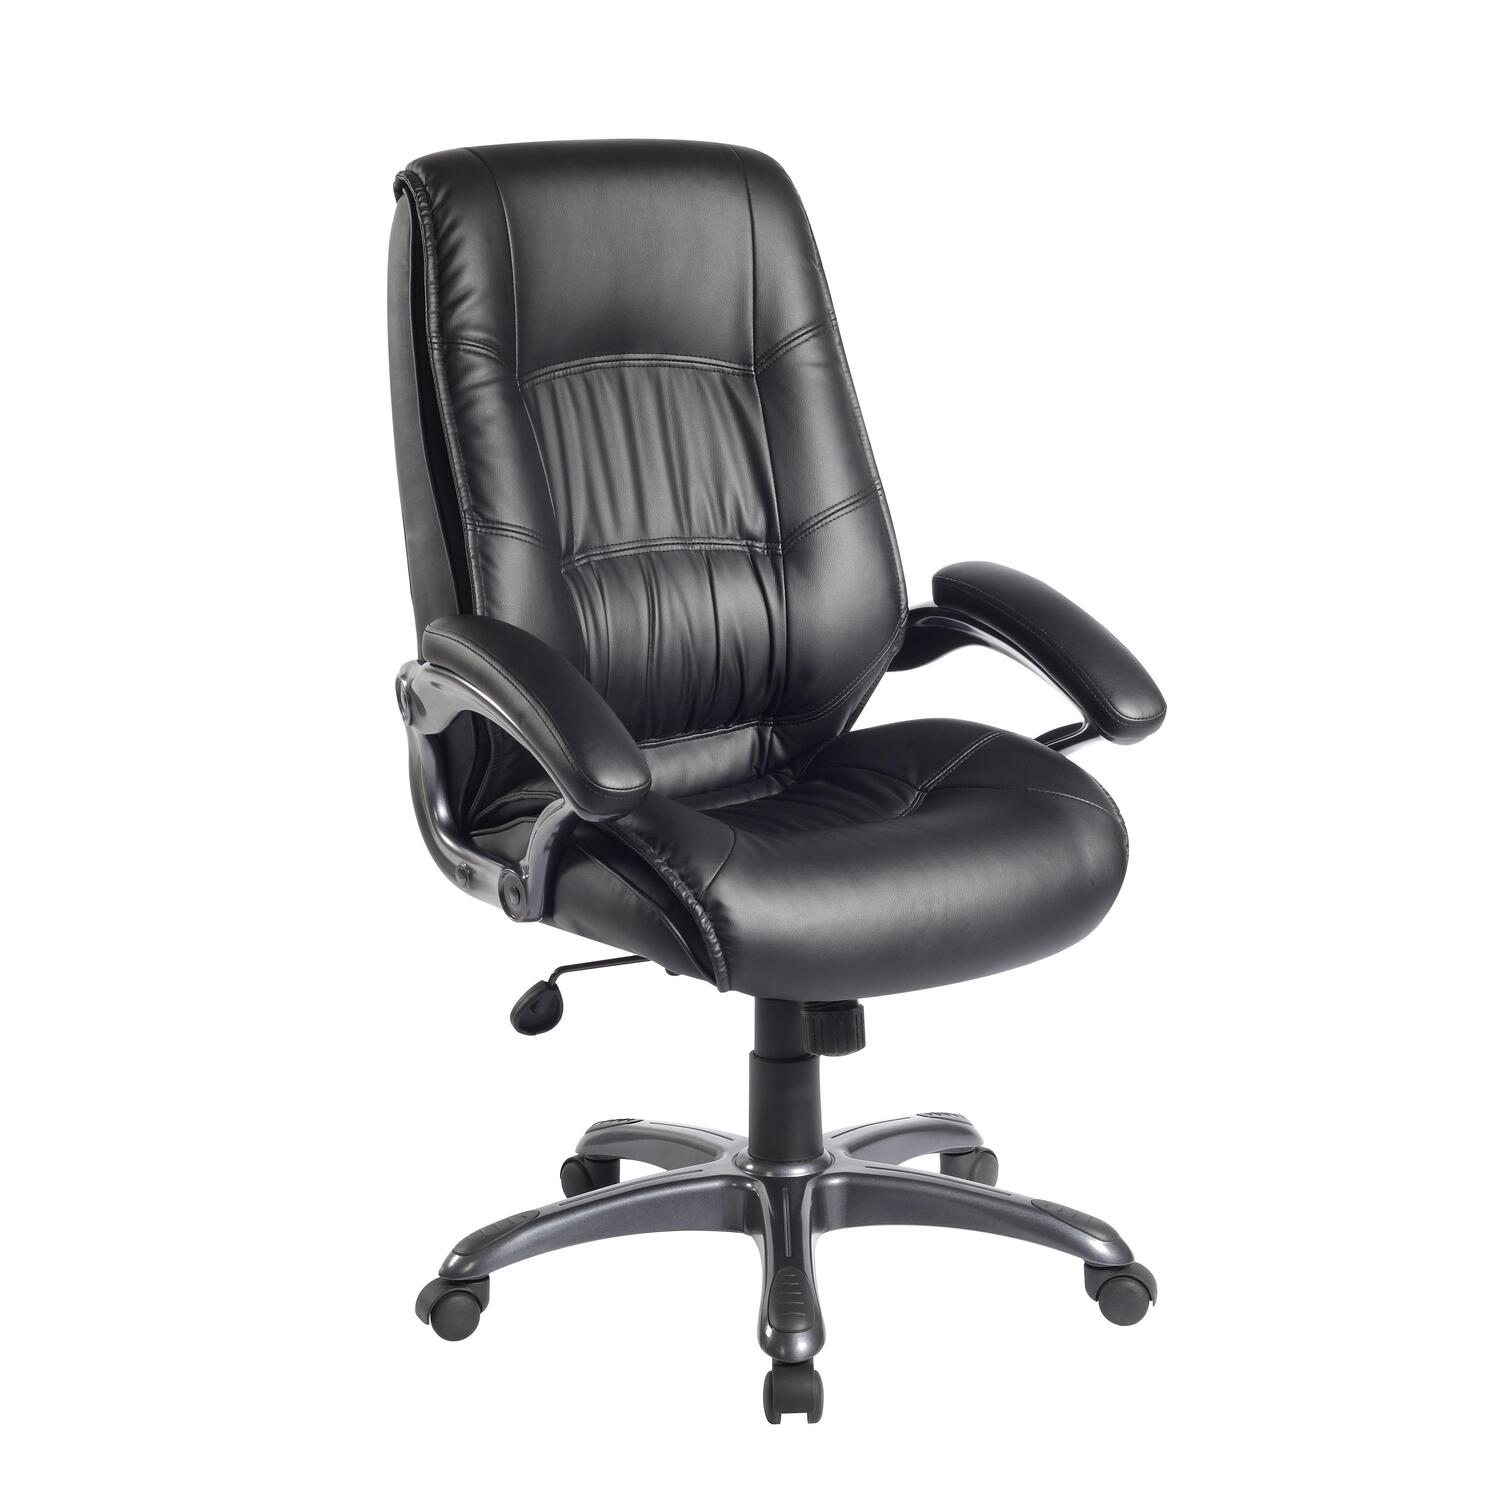 Techni Mobili Executive High Back Chair By OJ Commerce RTA 722H BK